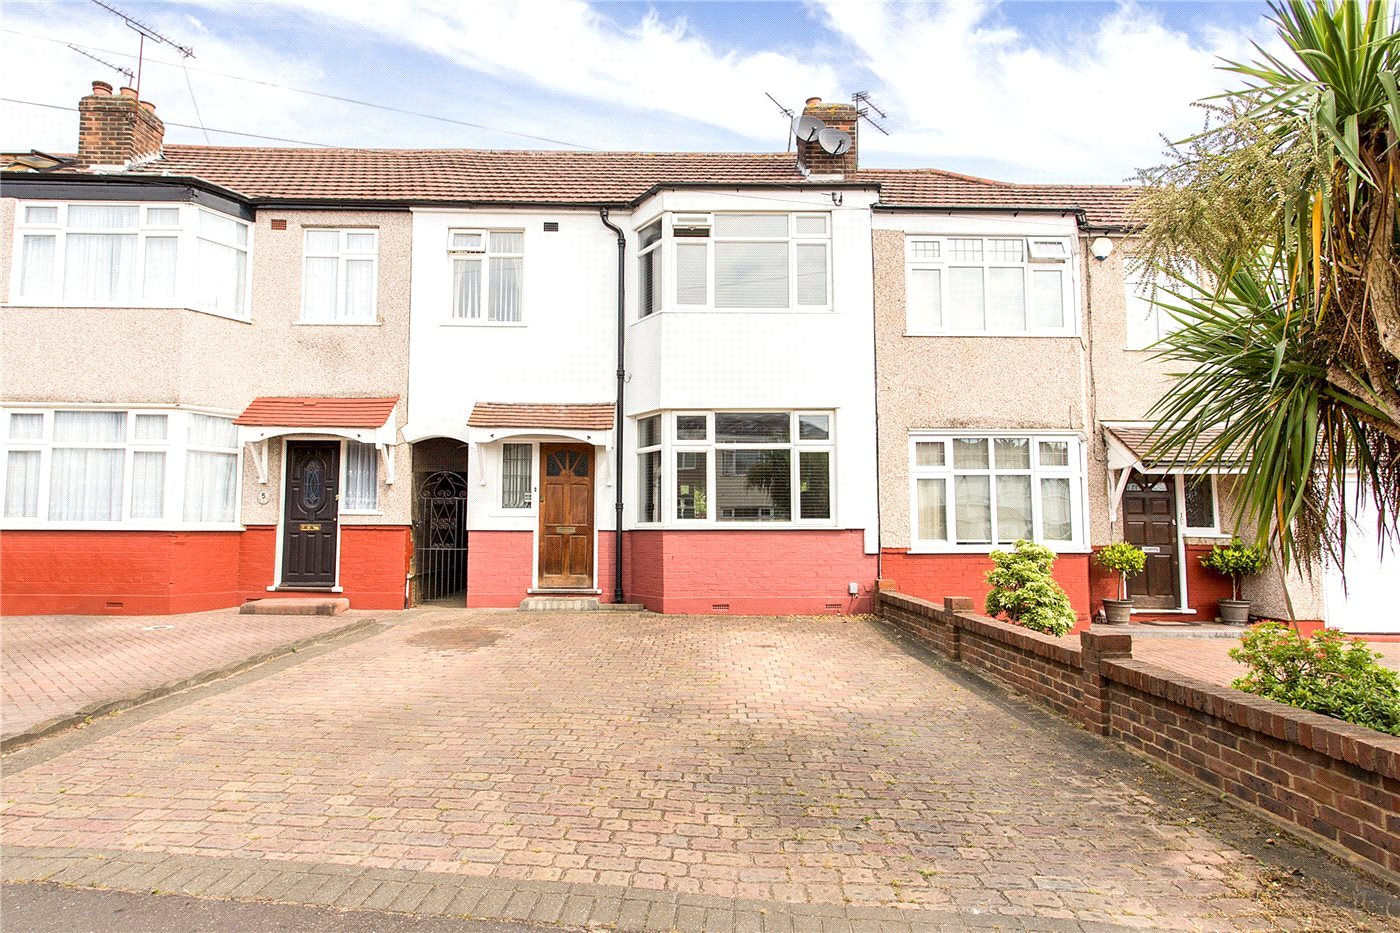 3 Bedrooms Terraced House for sale in Rochester Close, Enfield, EN1